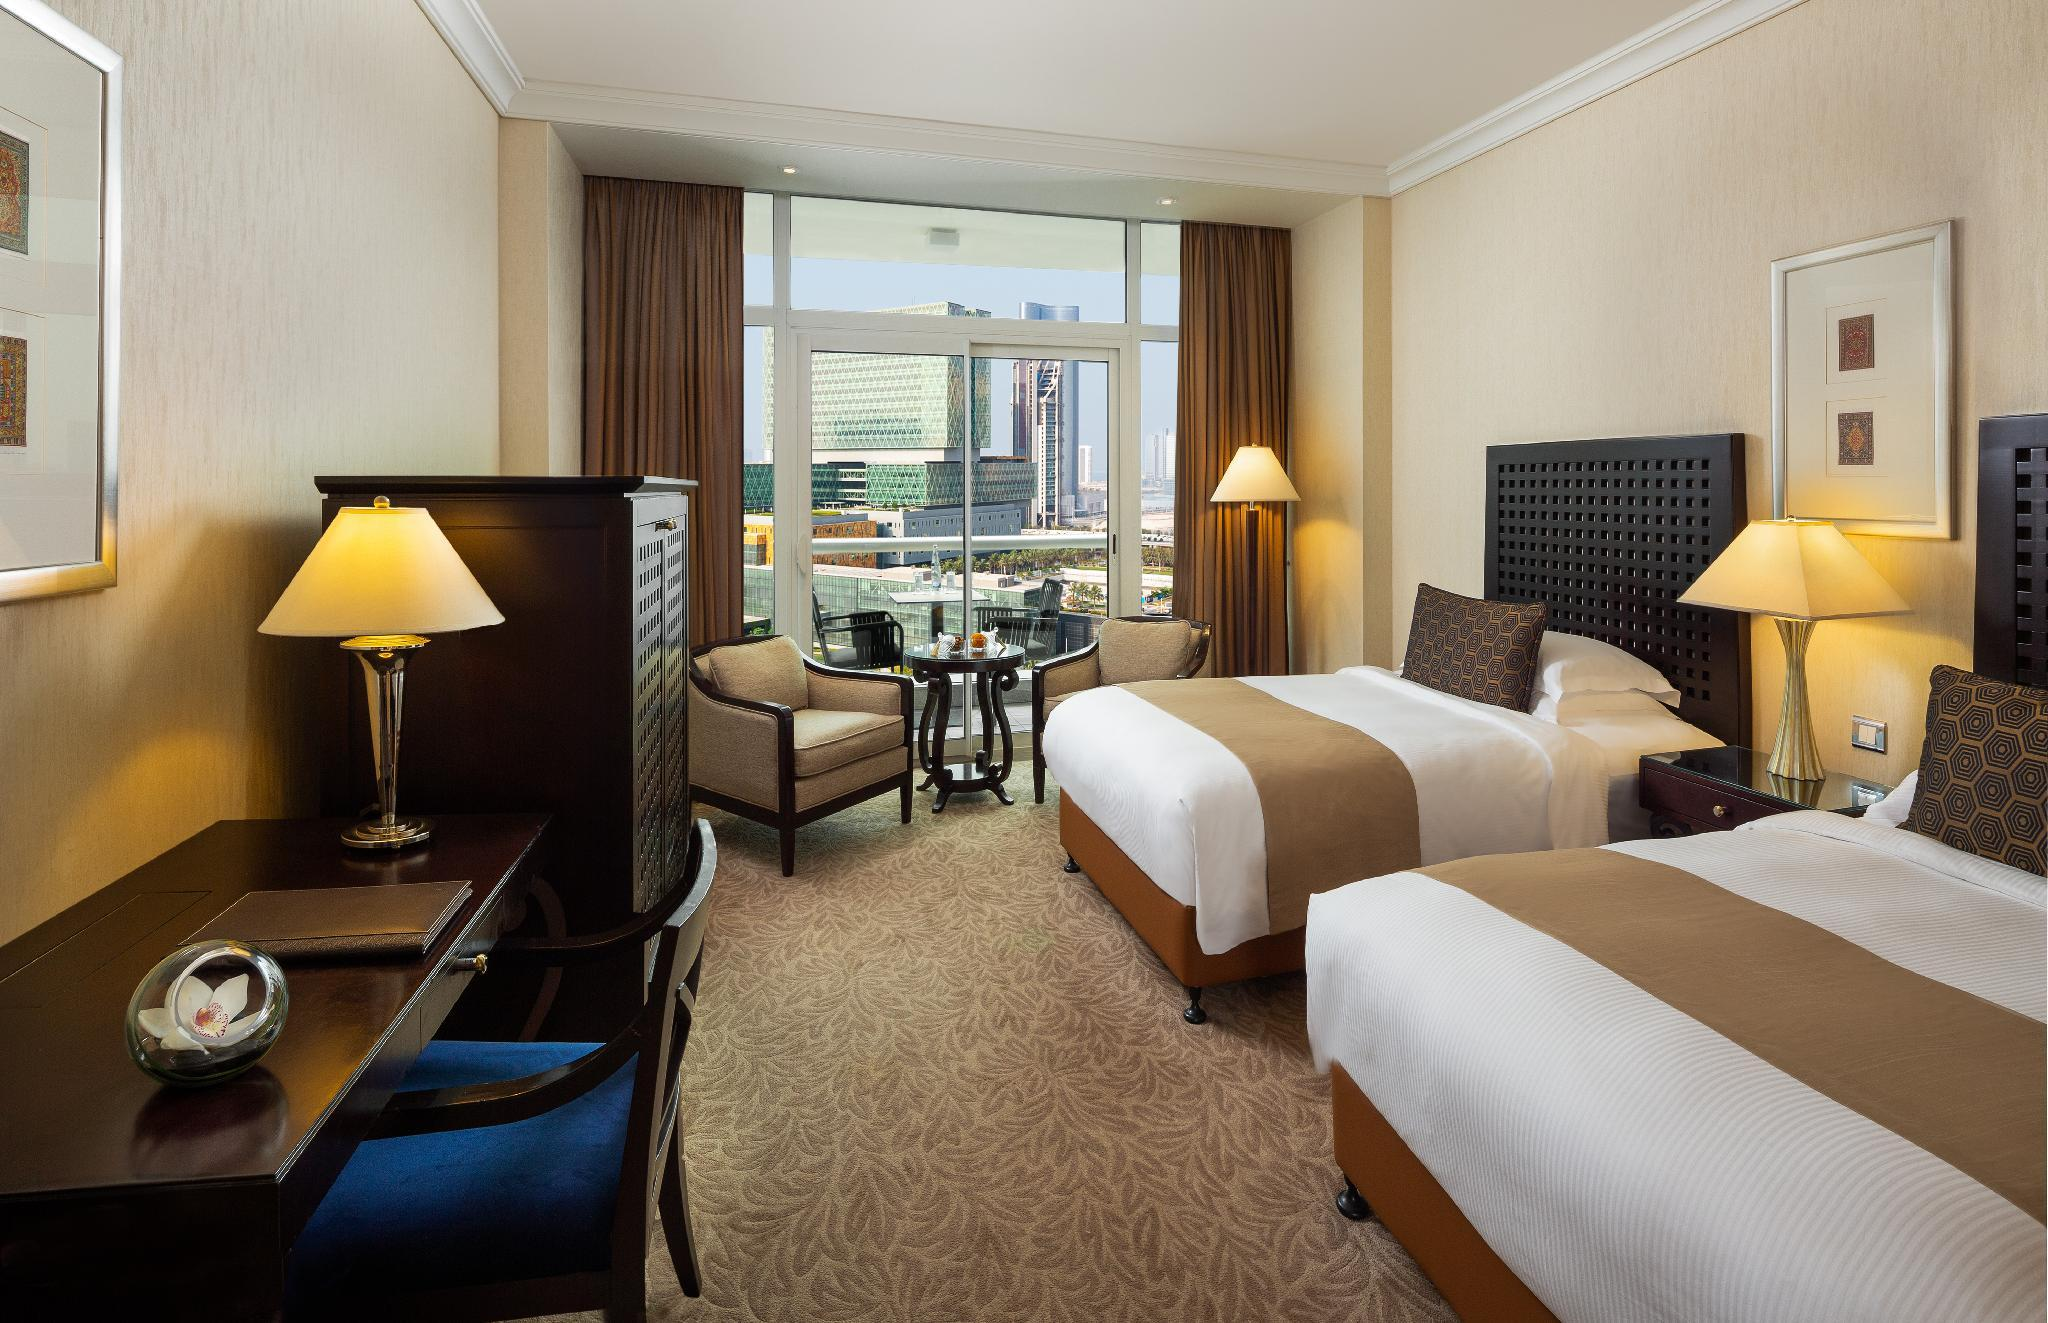 Club Rotana Kamer Tweepersoons met 2 aparte bedden (Club Rotana Twin Bed Room)